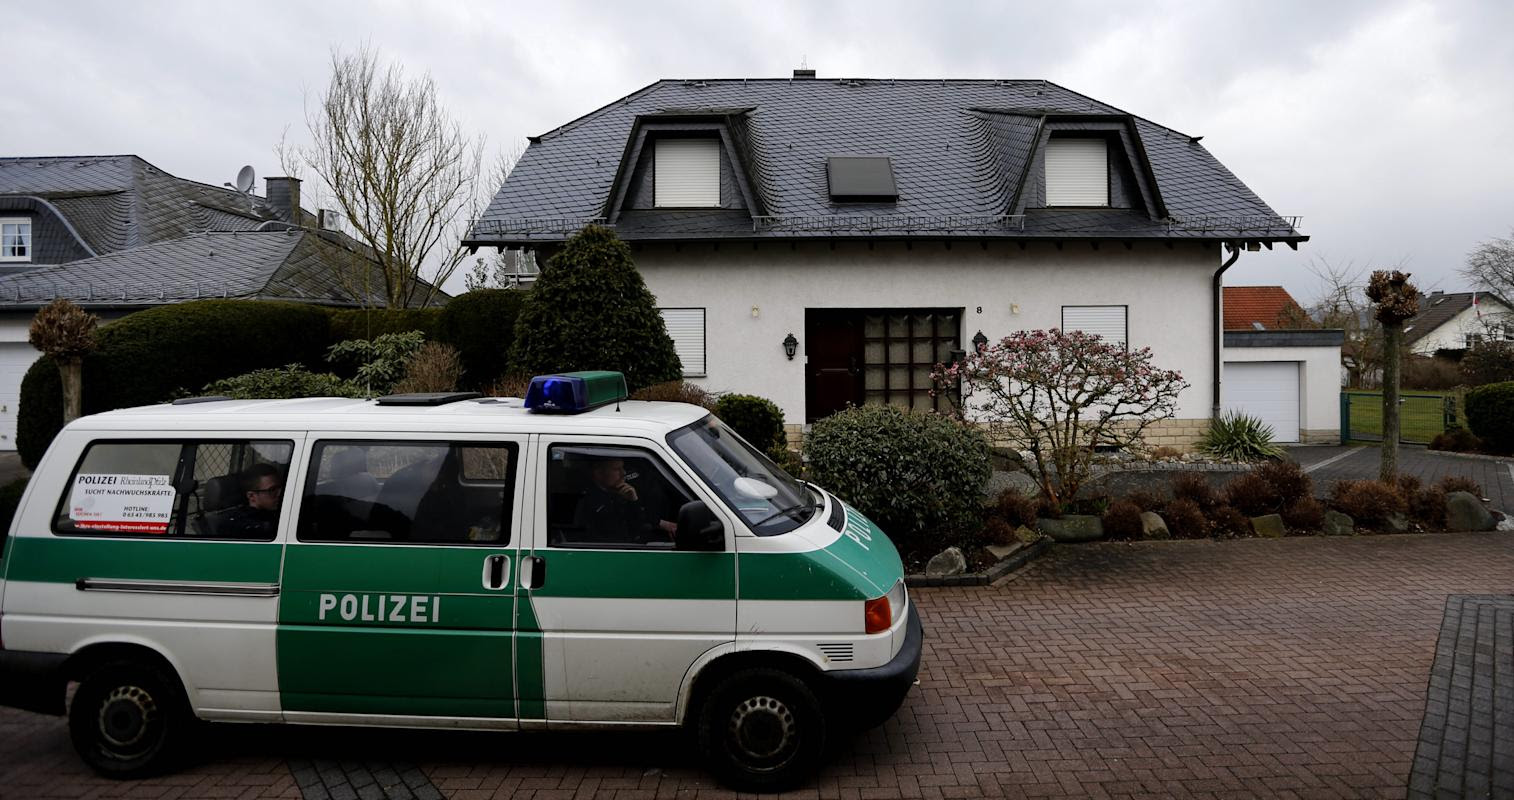 A police car waits in front of the house of the family of Andreas Lubitz in Montabaur, Germany, Friday, March 27, 2015. Lubitz was the co-pilot on the  Germanwings plane  that crashed with 150 people on board on Tuesday in the French Alps. (AP Photo Frank Augstein)